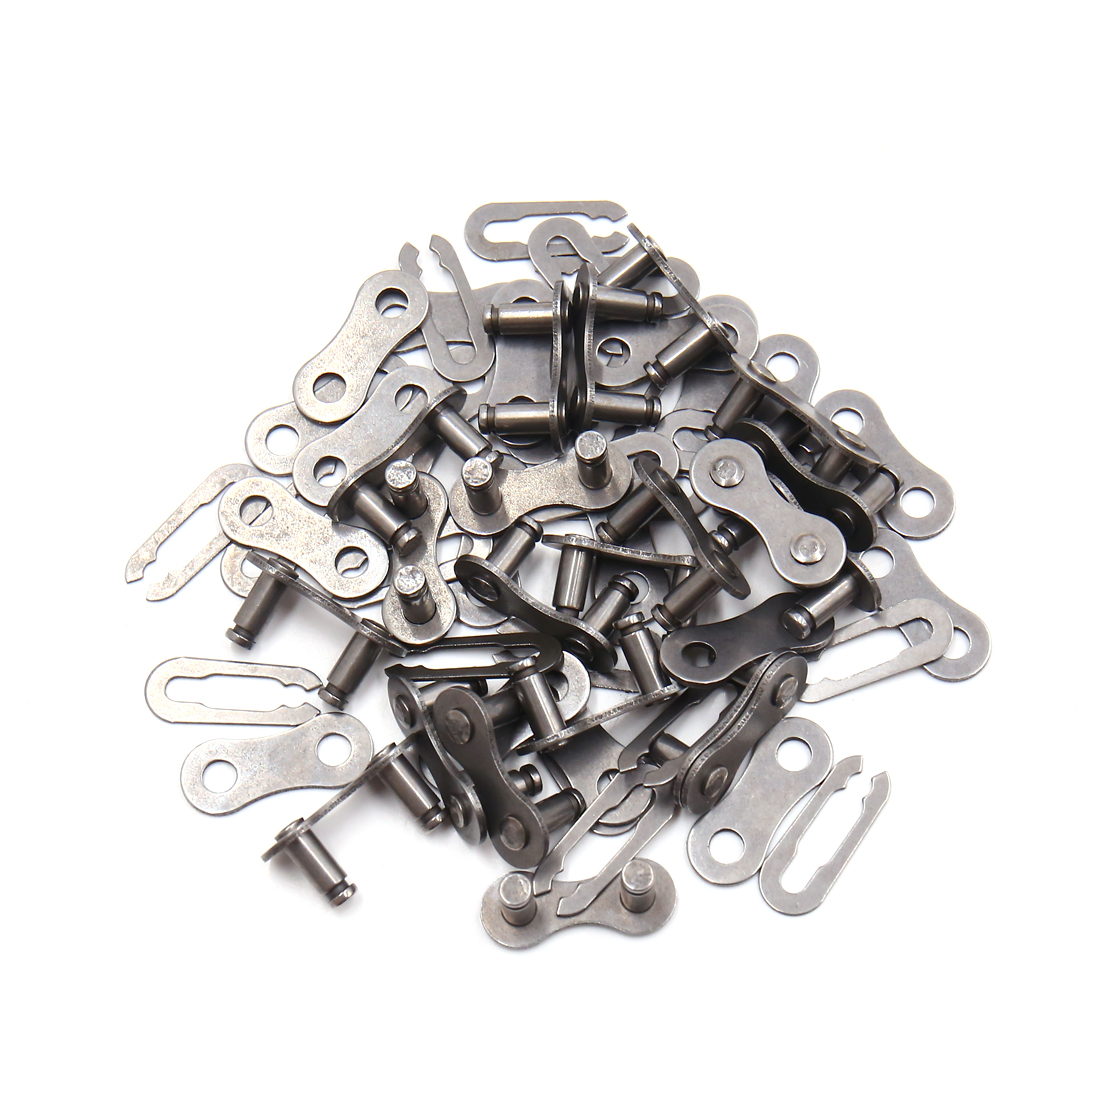 20Pcs Metal Chain Master Link Joint Clips Connectors for MTB Bike Bicycle